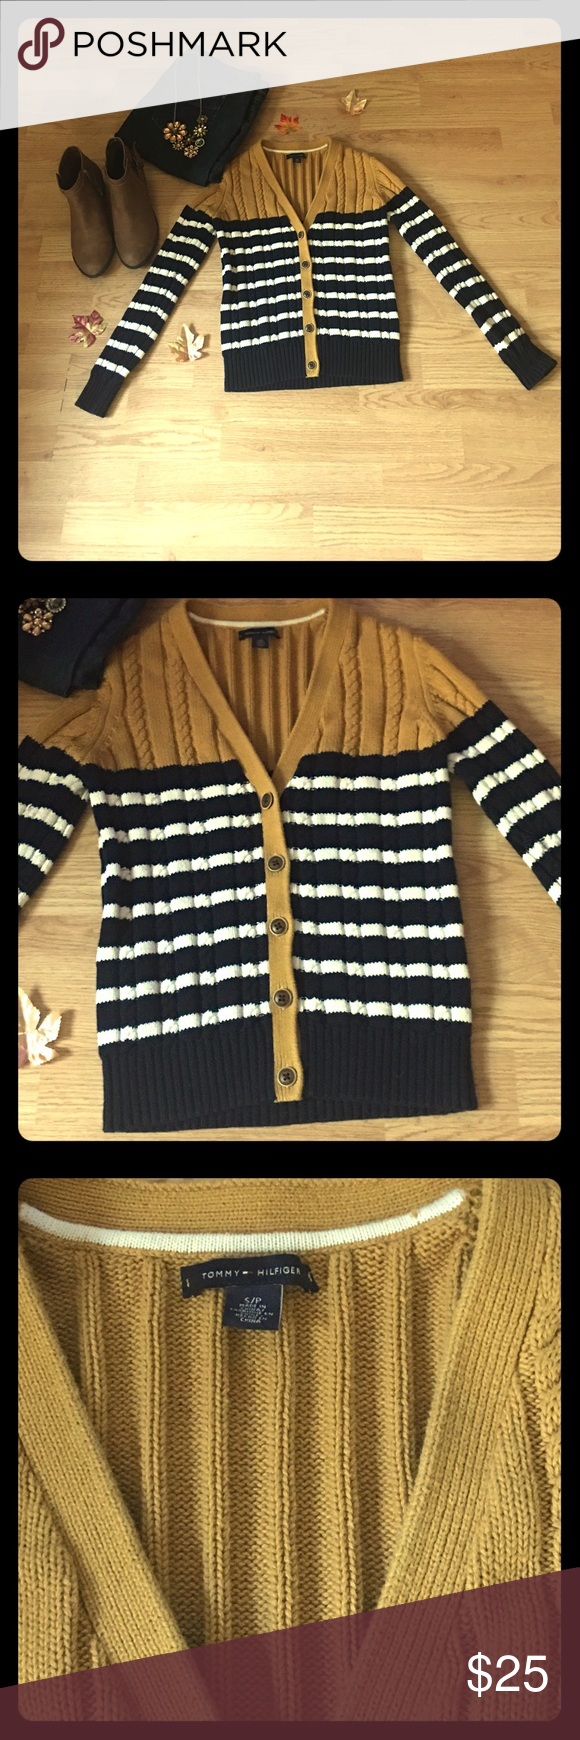 2 HR FLASH SALE🍁Tommy Hilfiger Cardigan 🍁In like new condition.                                                                 🍁Best offers considered!                                                                  🍁Bundle for the best offer! Tommy Hilfiger Sweaters Cardigans